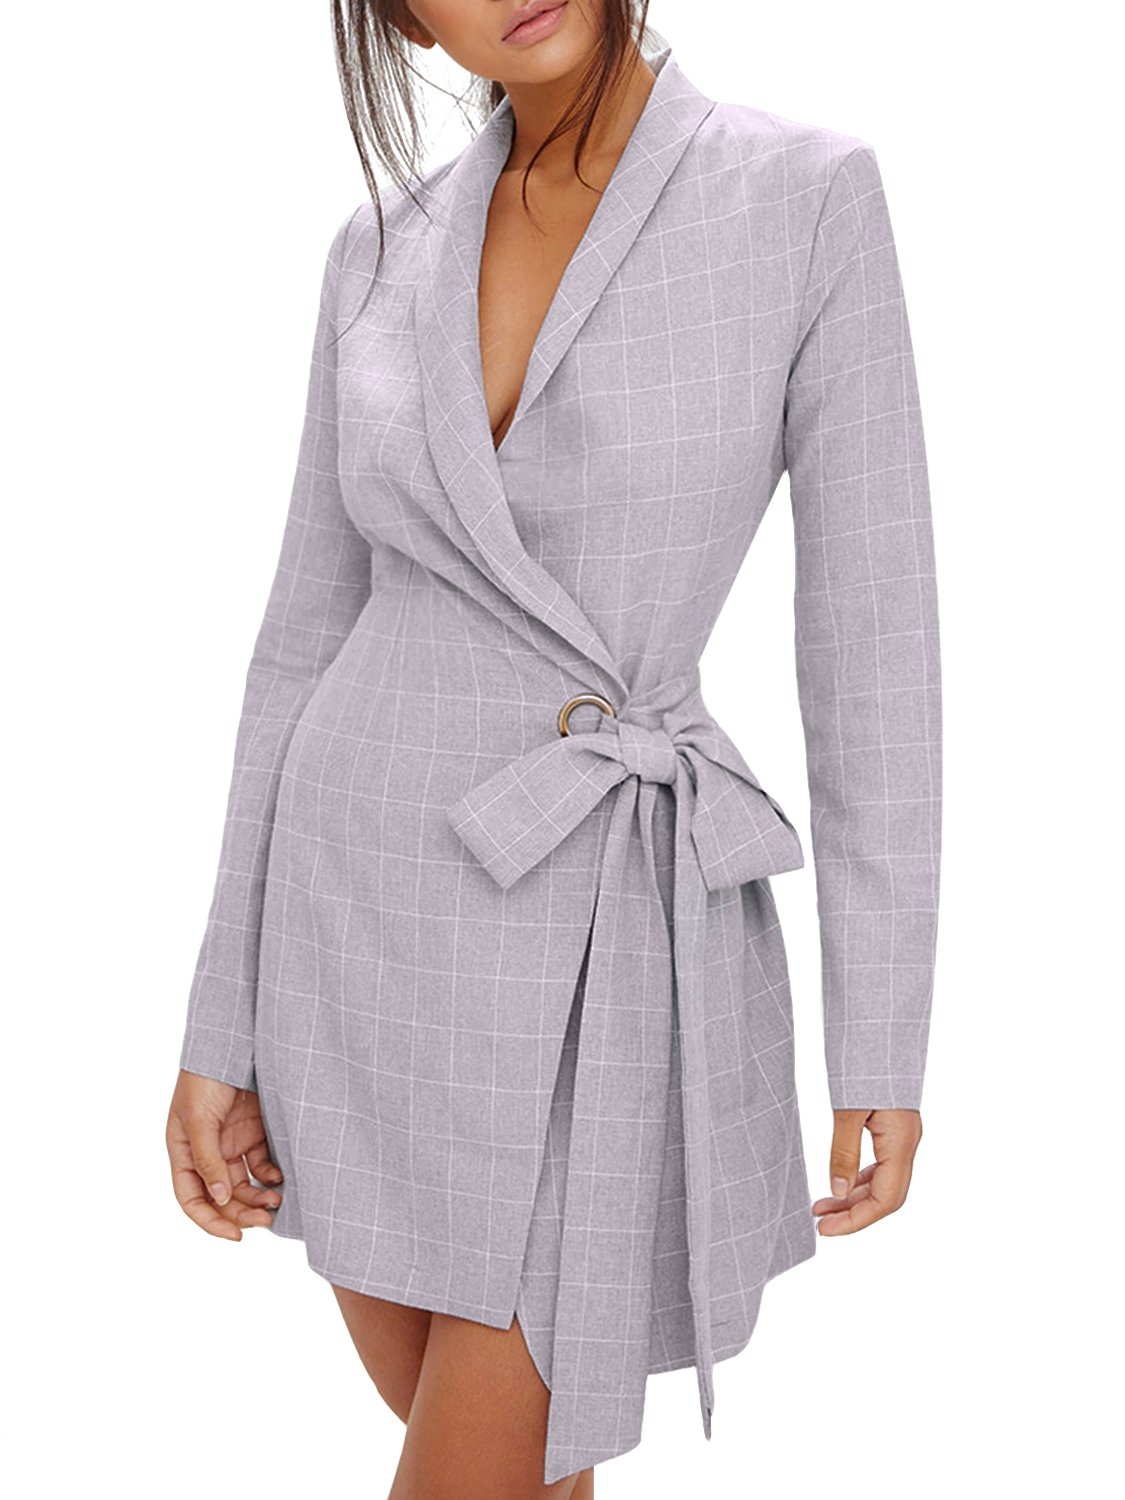 D Jill Women's Casual Open Front Long Sleeve Lapel Blazer Jacket with Belt Gray